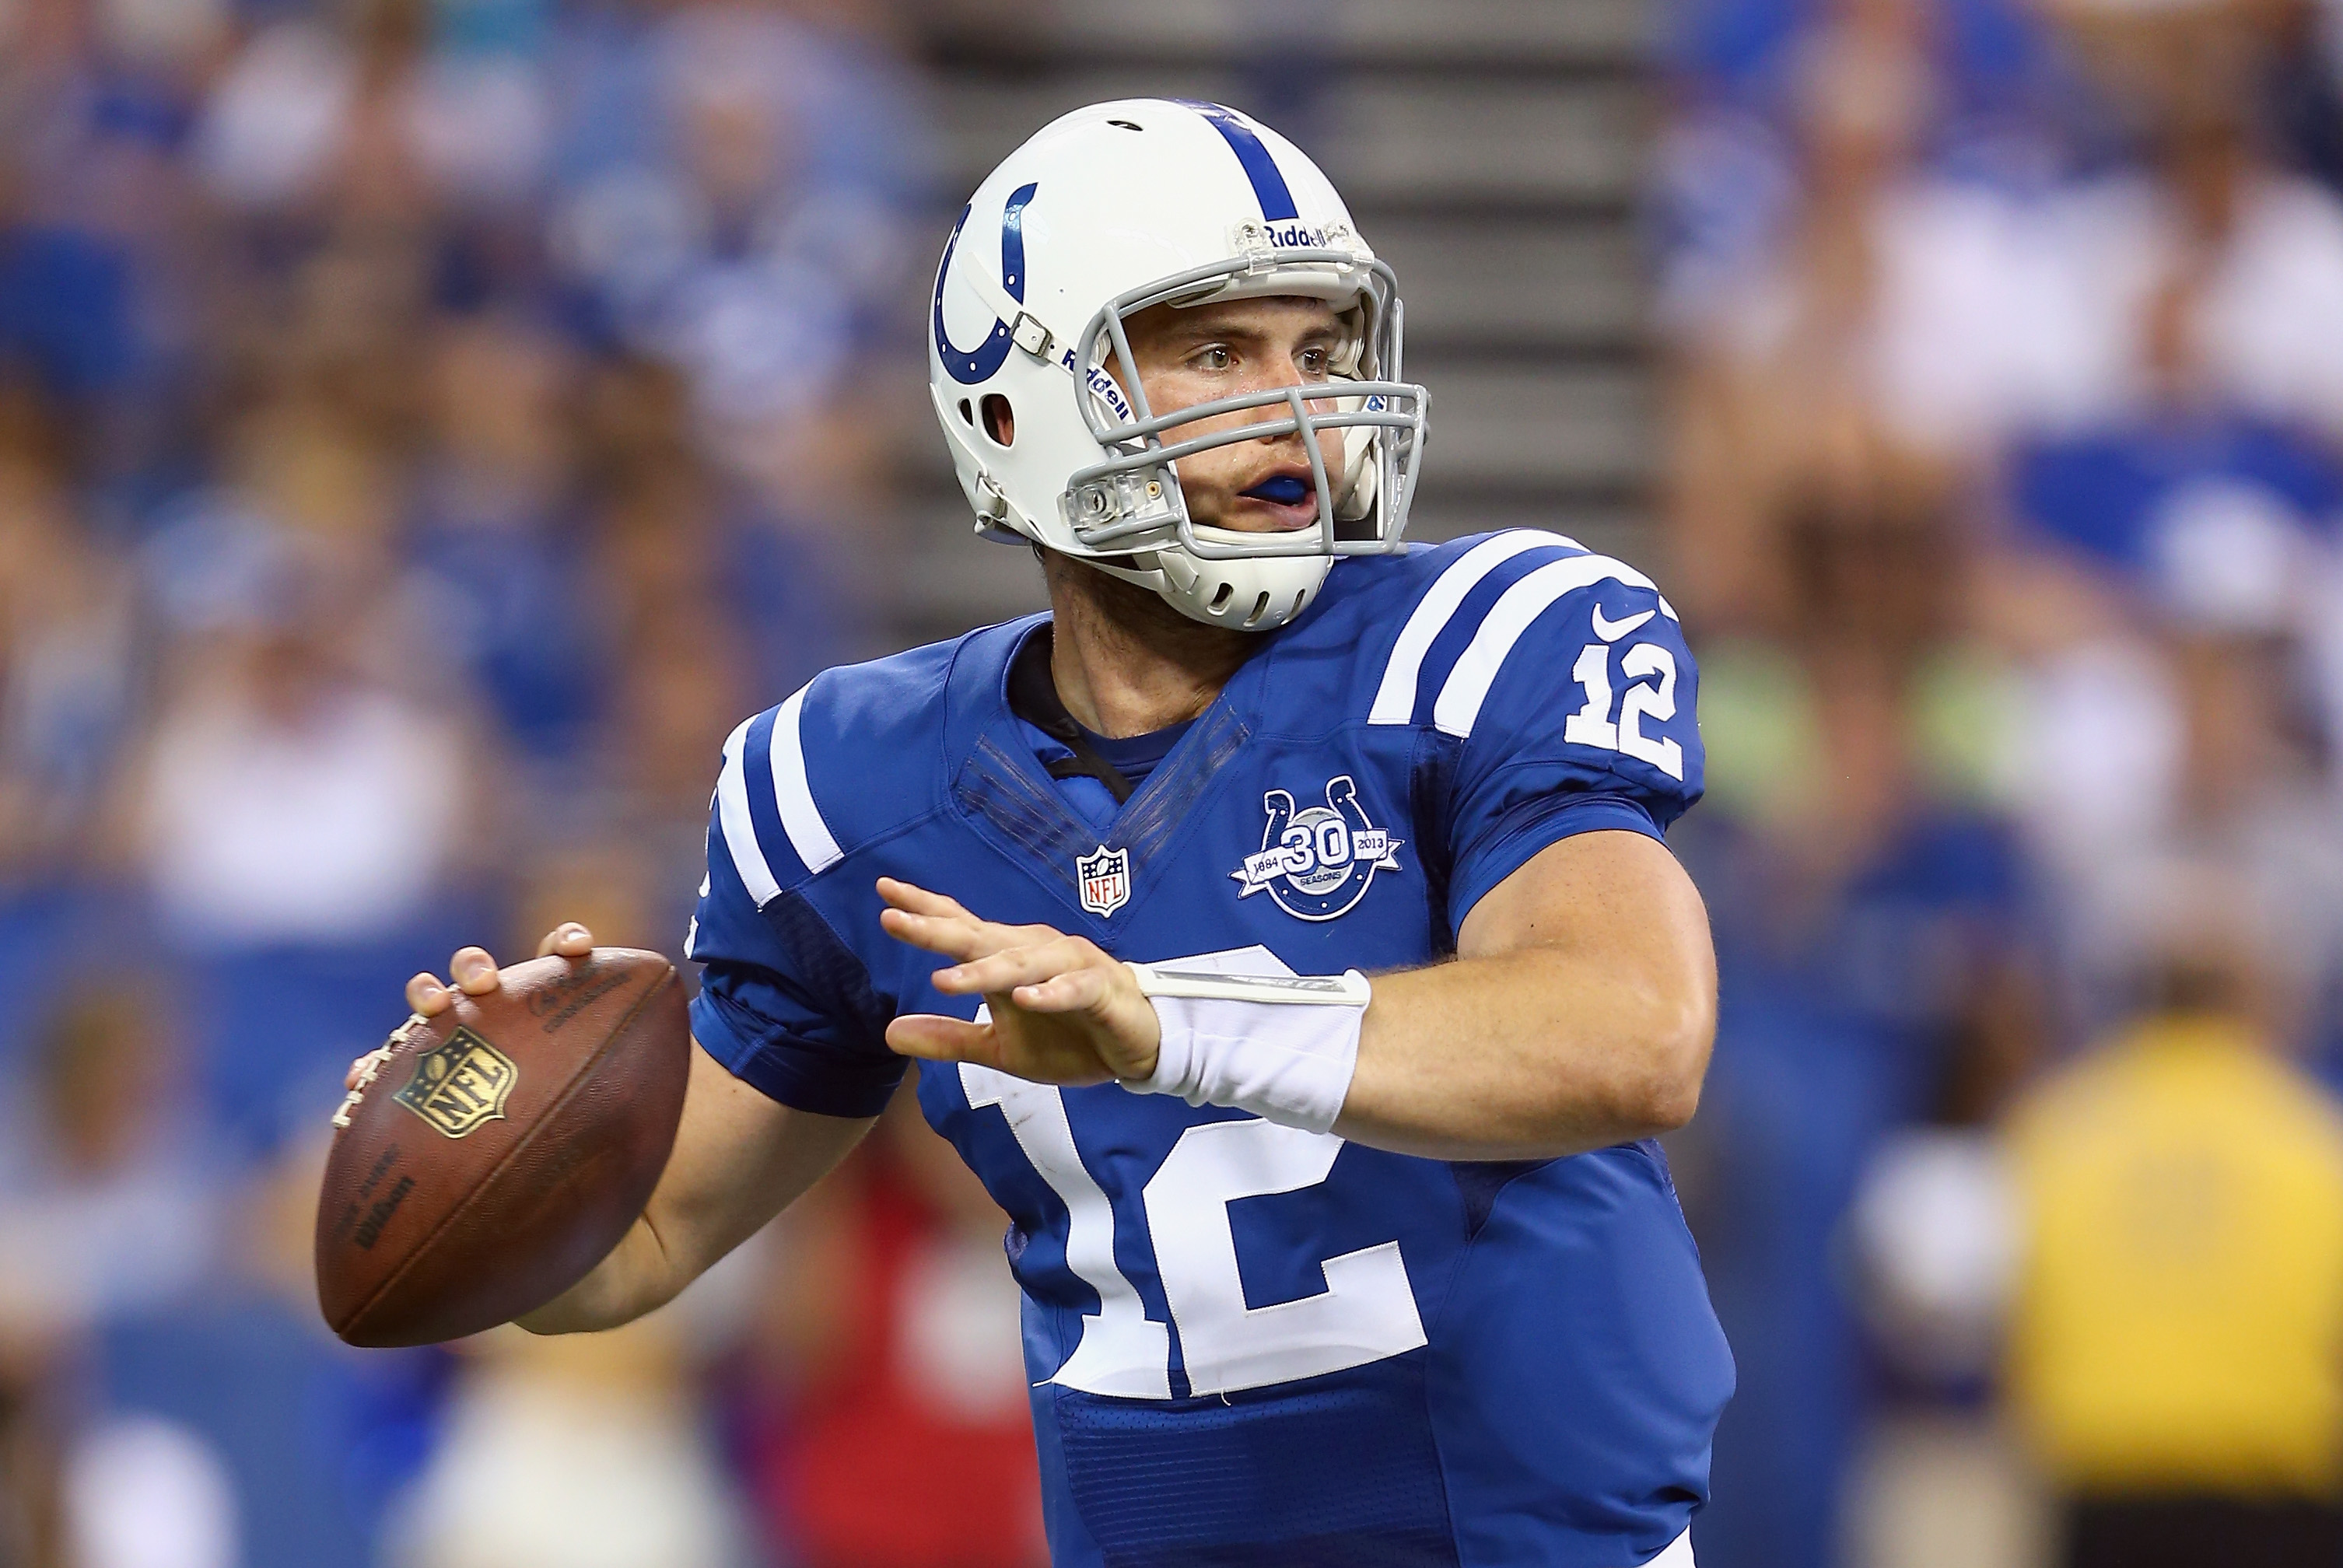 http://garbersports.com/wp-content/uploads/2015/11/andrew-luck.jpg